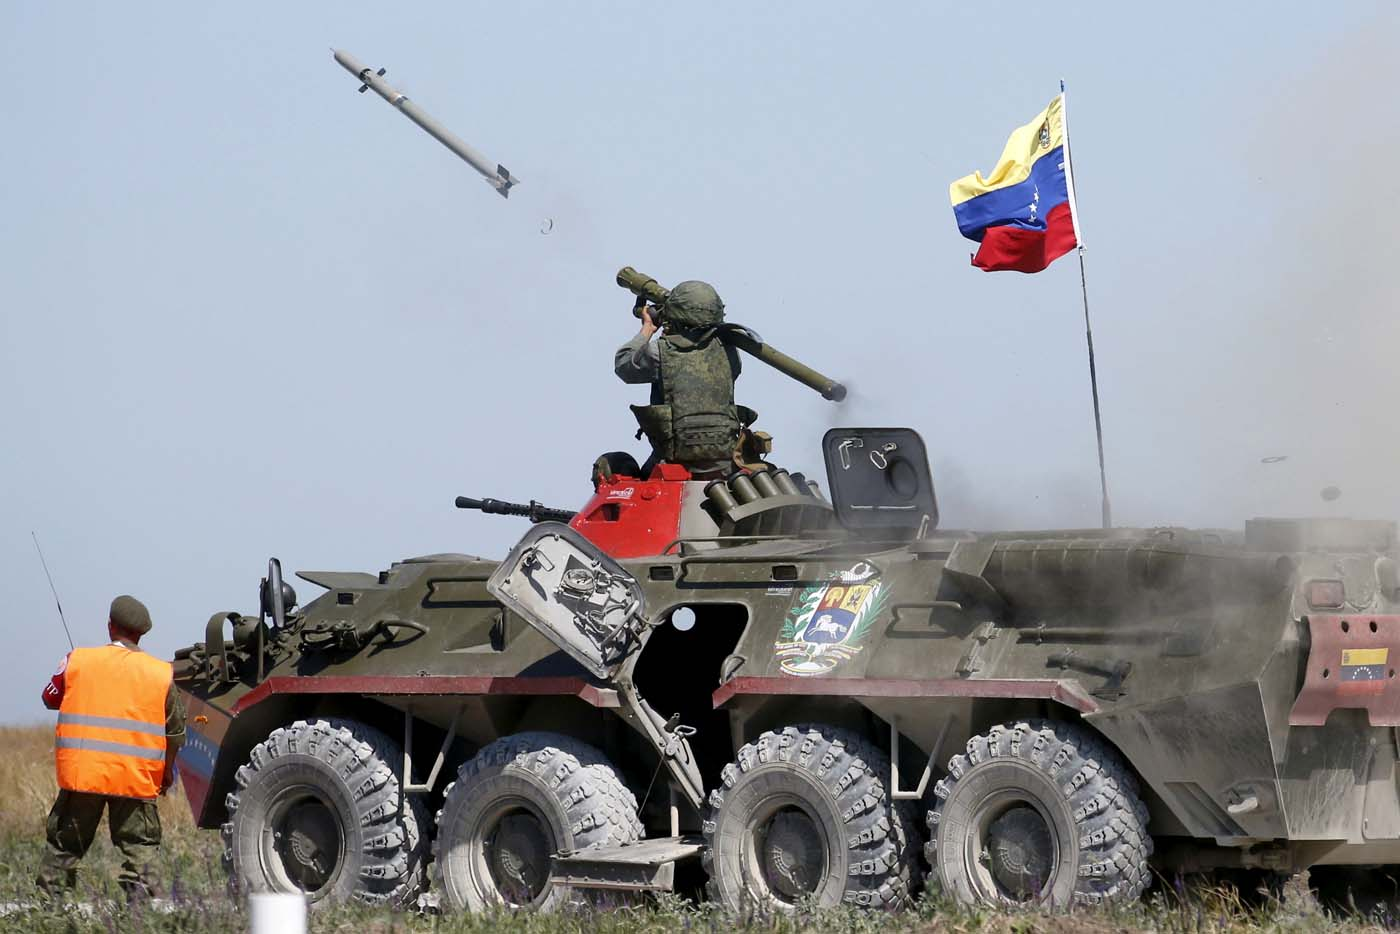 FILE PHOTO: A serviceman from Venezuela fires an anti-aircraft missile with a Russian-made Igla ground-to-air launcher as he sits on top of an armoured personnel carrier (APC) during the Air defense battle masters competition as part of the International Army Games 2015 in the port town of Yeysk, Russia, August 9, 2015. REUTERS/Maxim Zmeyev/Files